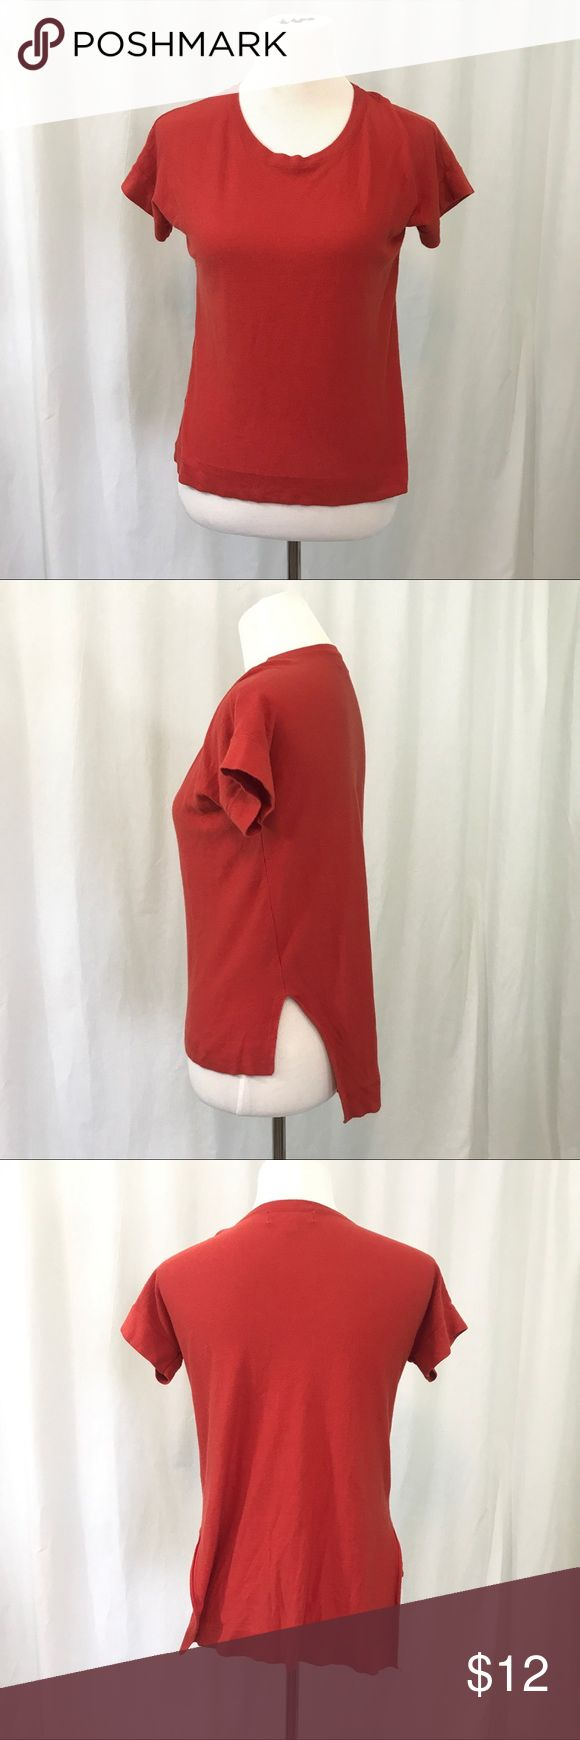 Philosophy Orange Tunic  Style Short Sleeve Top S EUC. Orange Short Sleeved Shirt . Size Small Bust  40 Length 21 in front. 26 in back Philosophy Tops Blouses